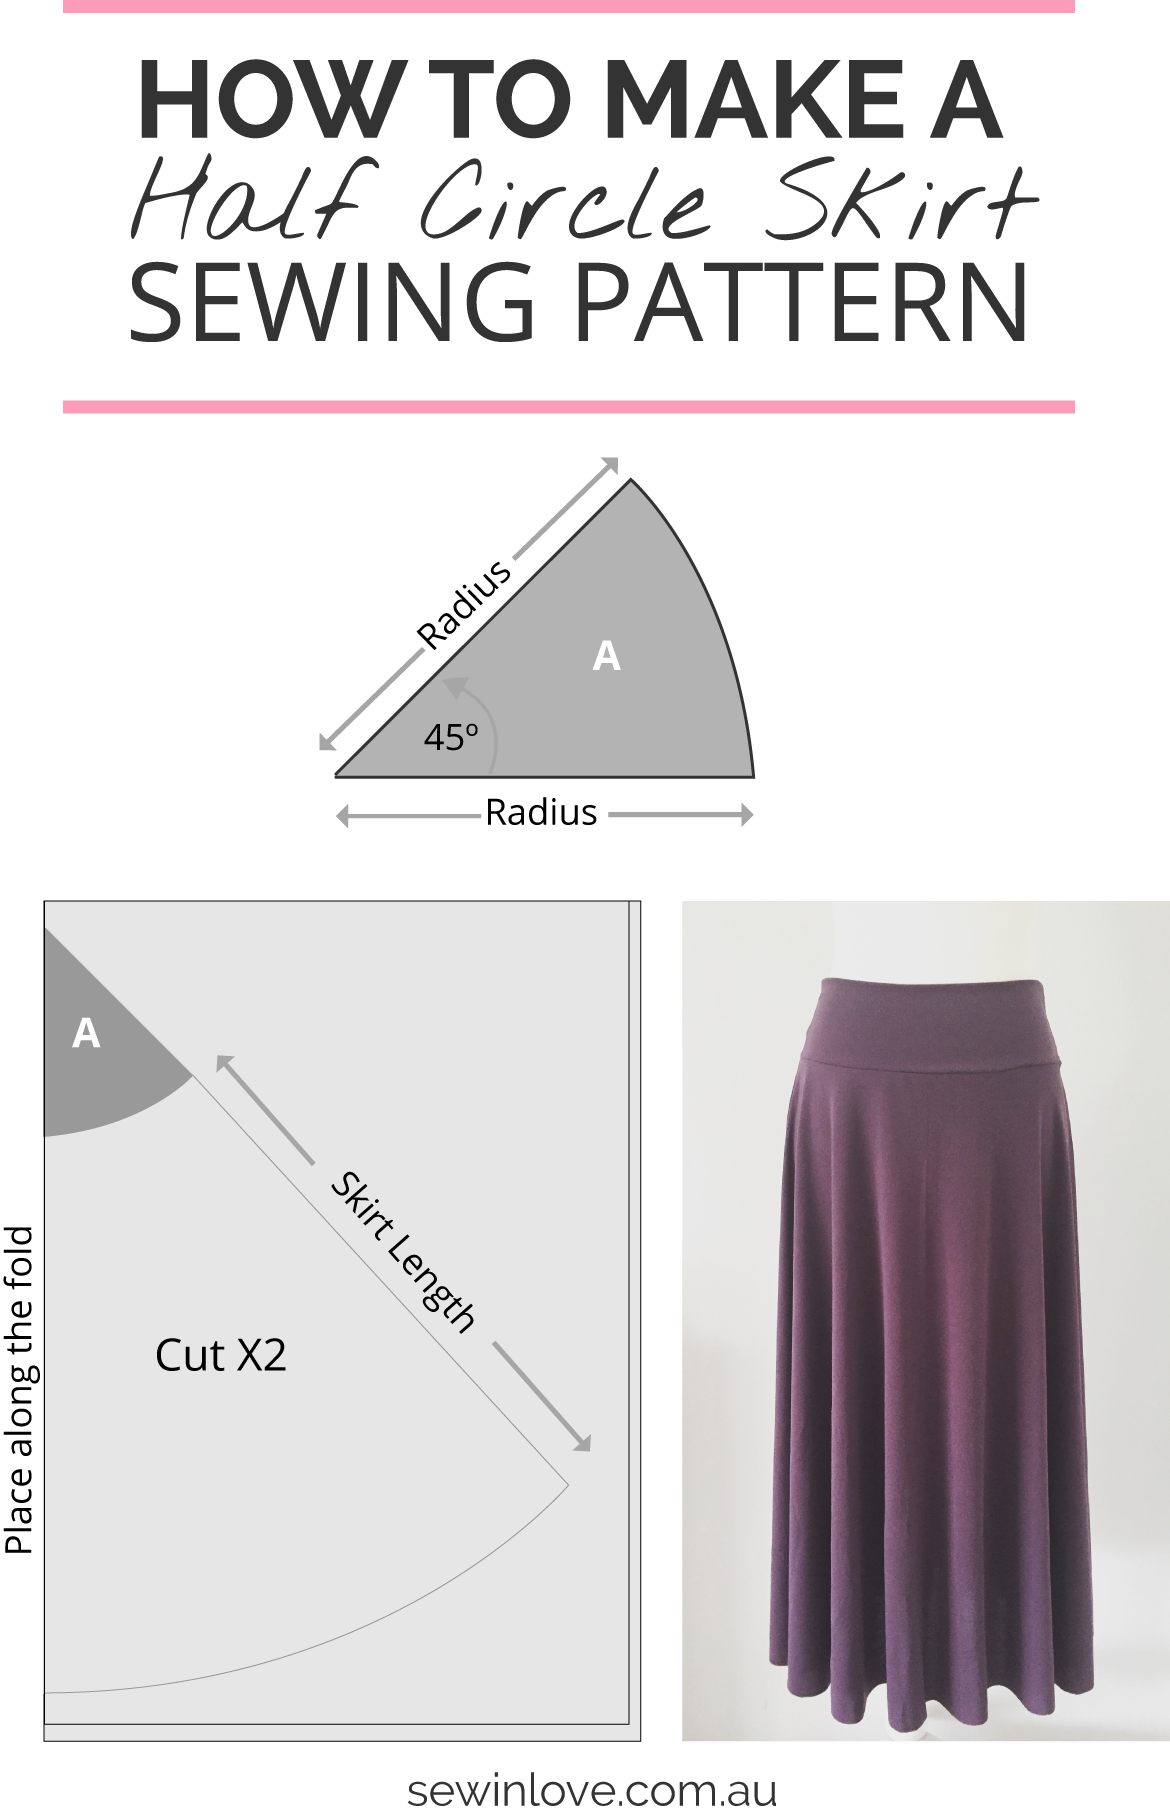 How to make a skirt in one day easy half circle skirt sew in love how to make a skirt learn how to make this simple skirt sewing pattern jeuxipadfo Gallery